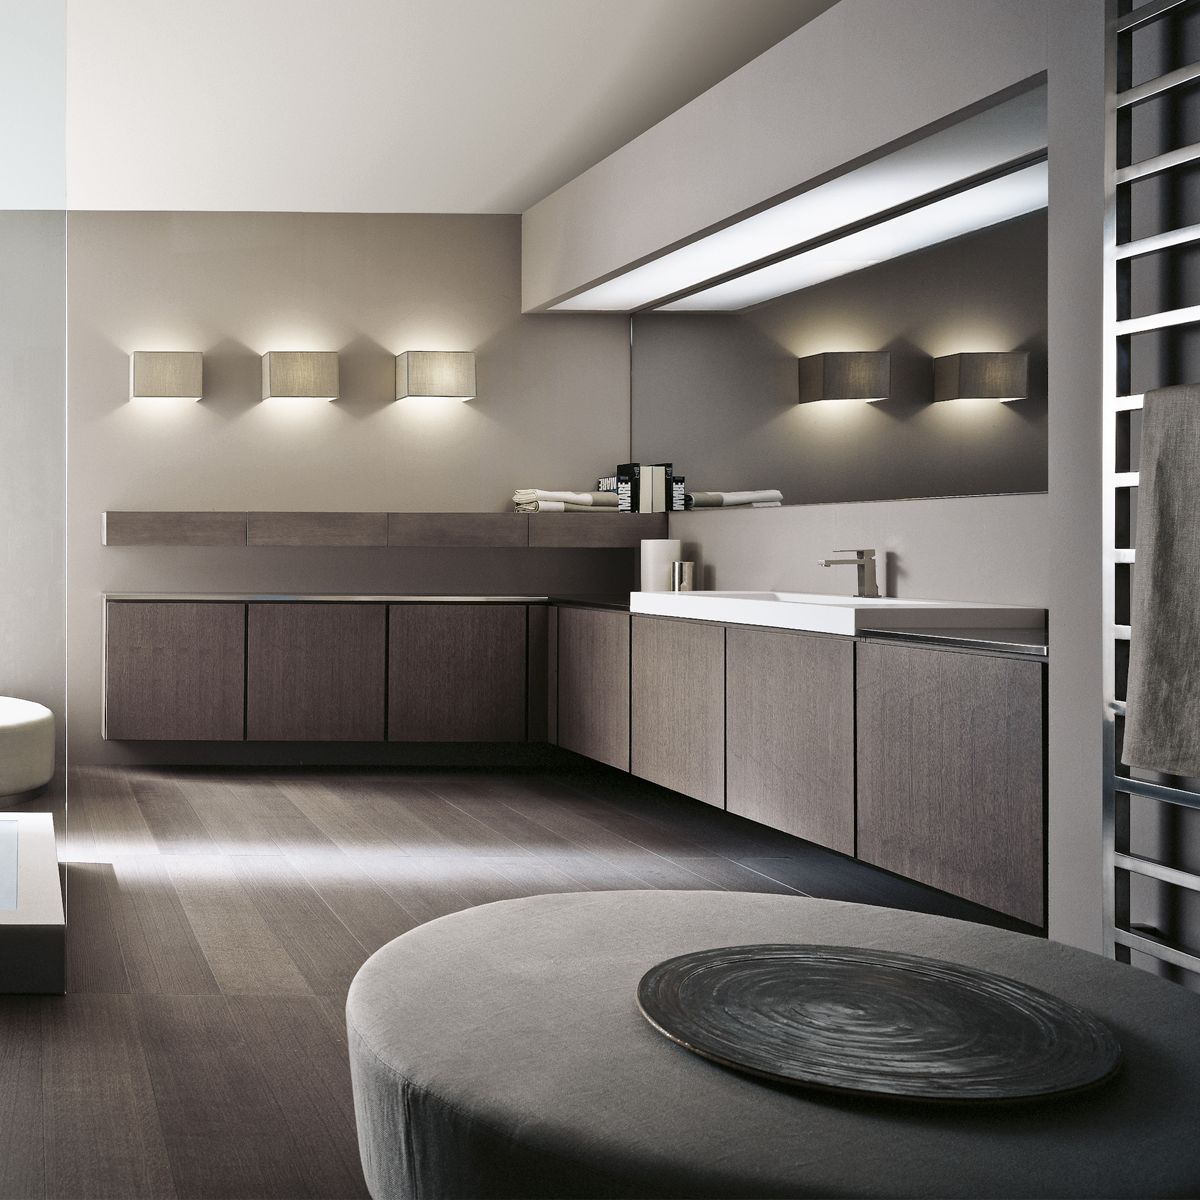 Bespoke fitted luxury bathroom cabinets